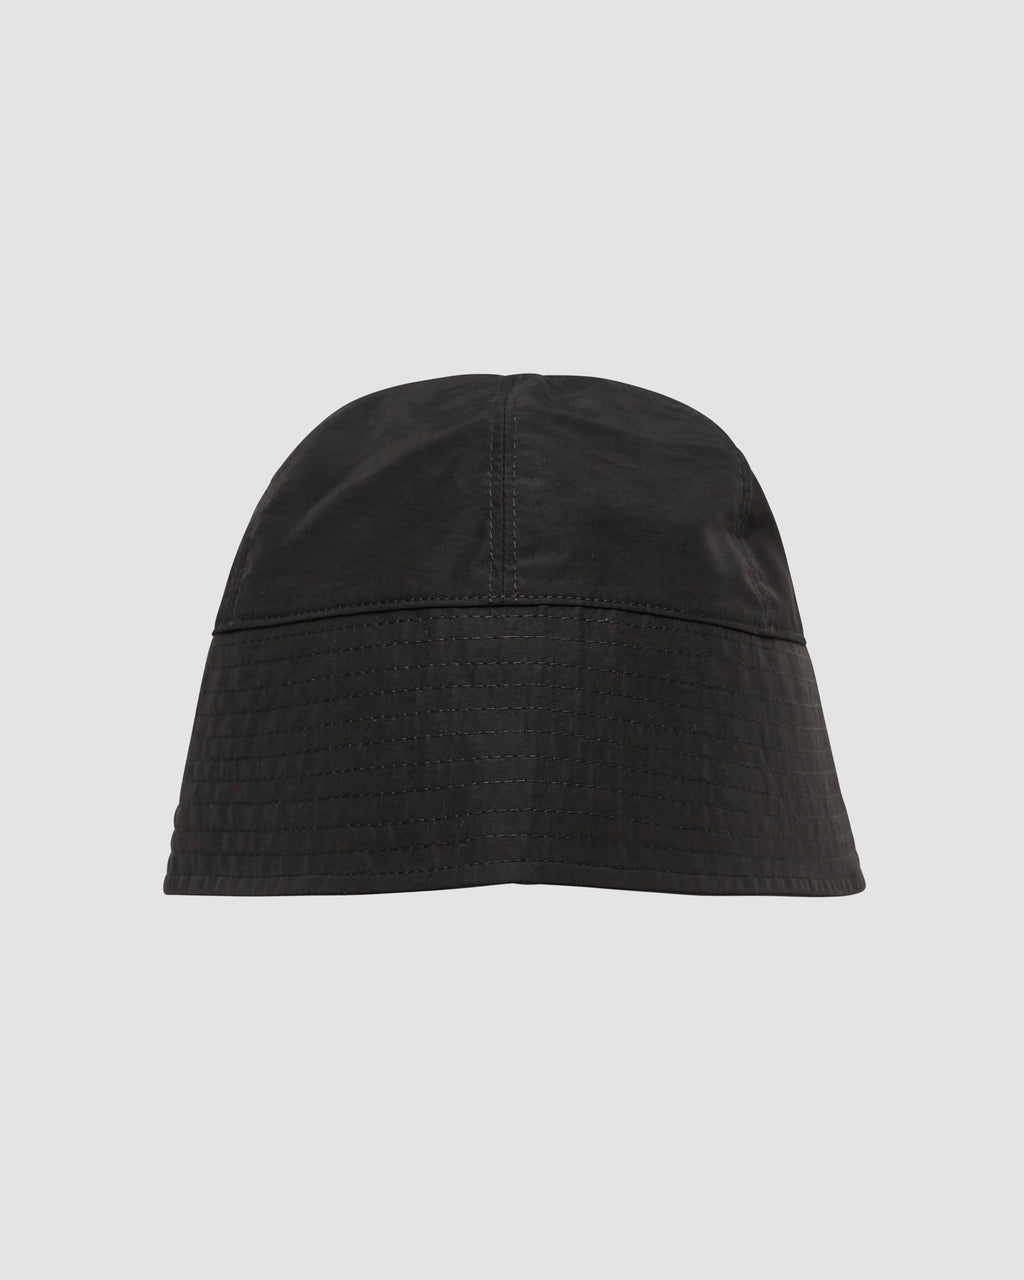 NARROW BUCKET HAT W/ BUCKLE PRE-ORDER